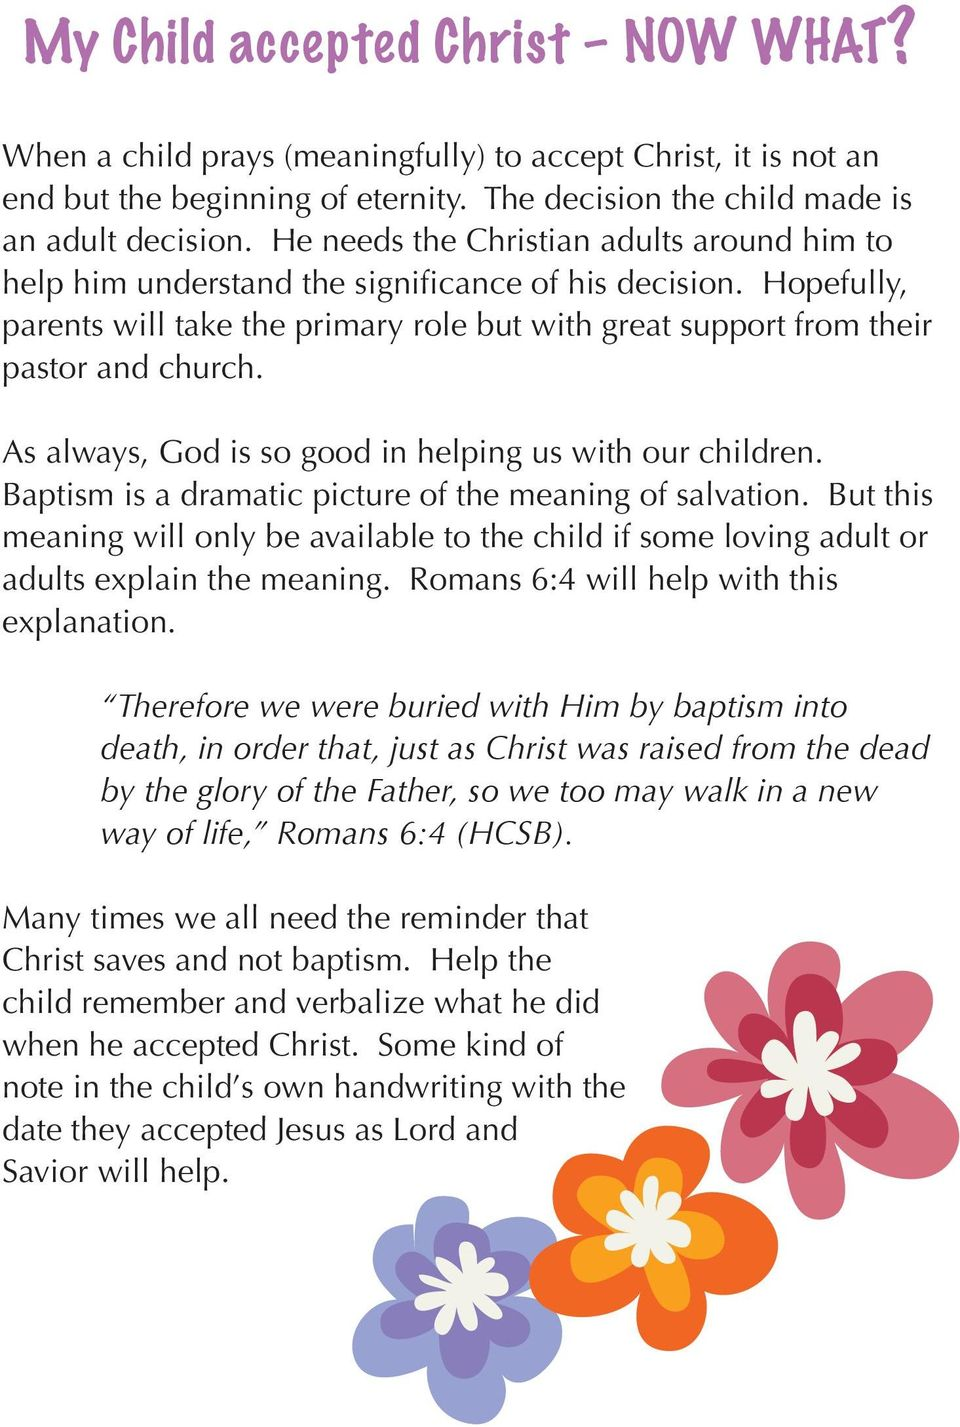 As always, God is so good in helping us with our children. Baptism is a dramatic picture of the meaning of salvation.